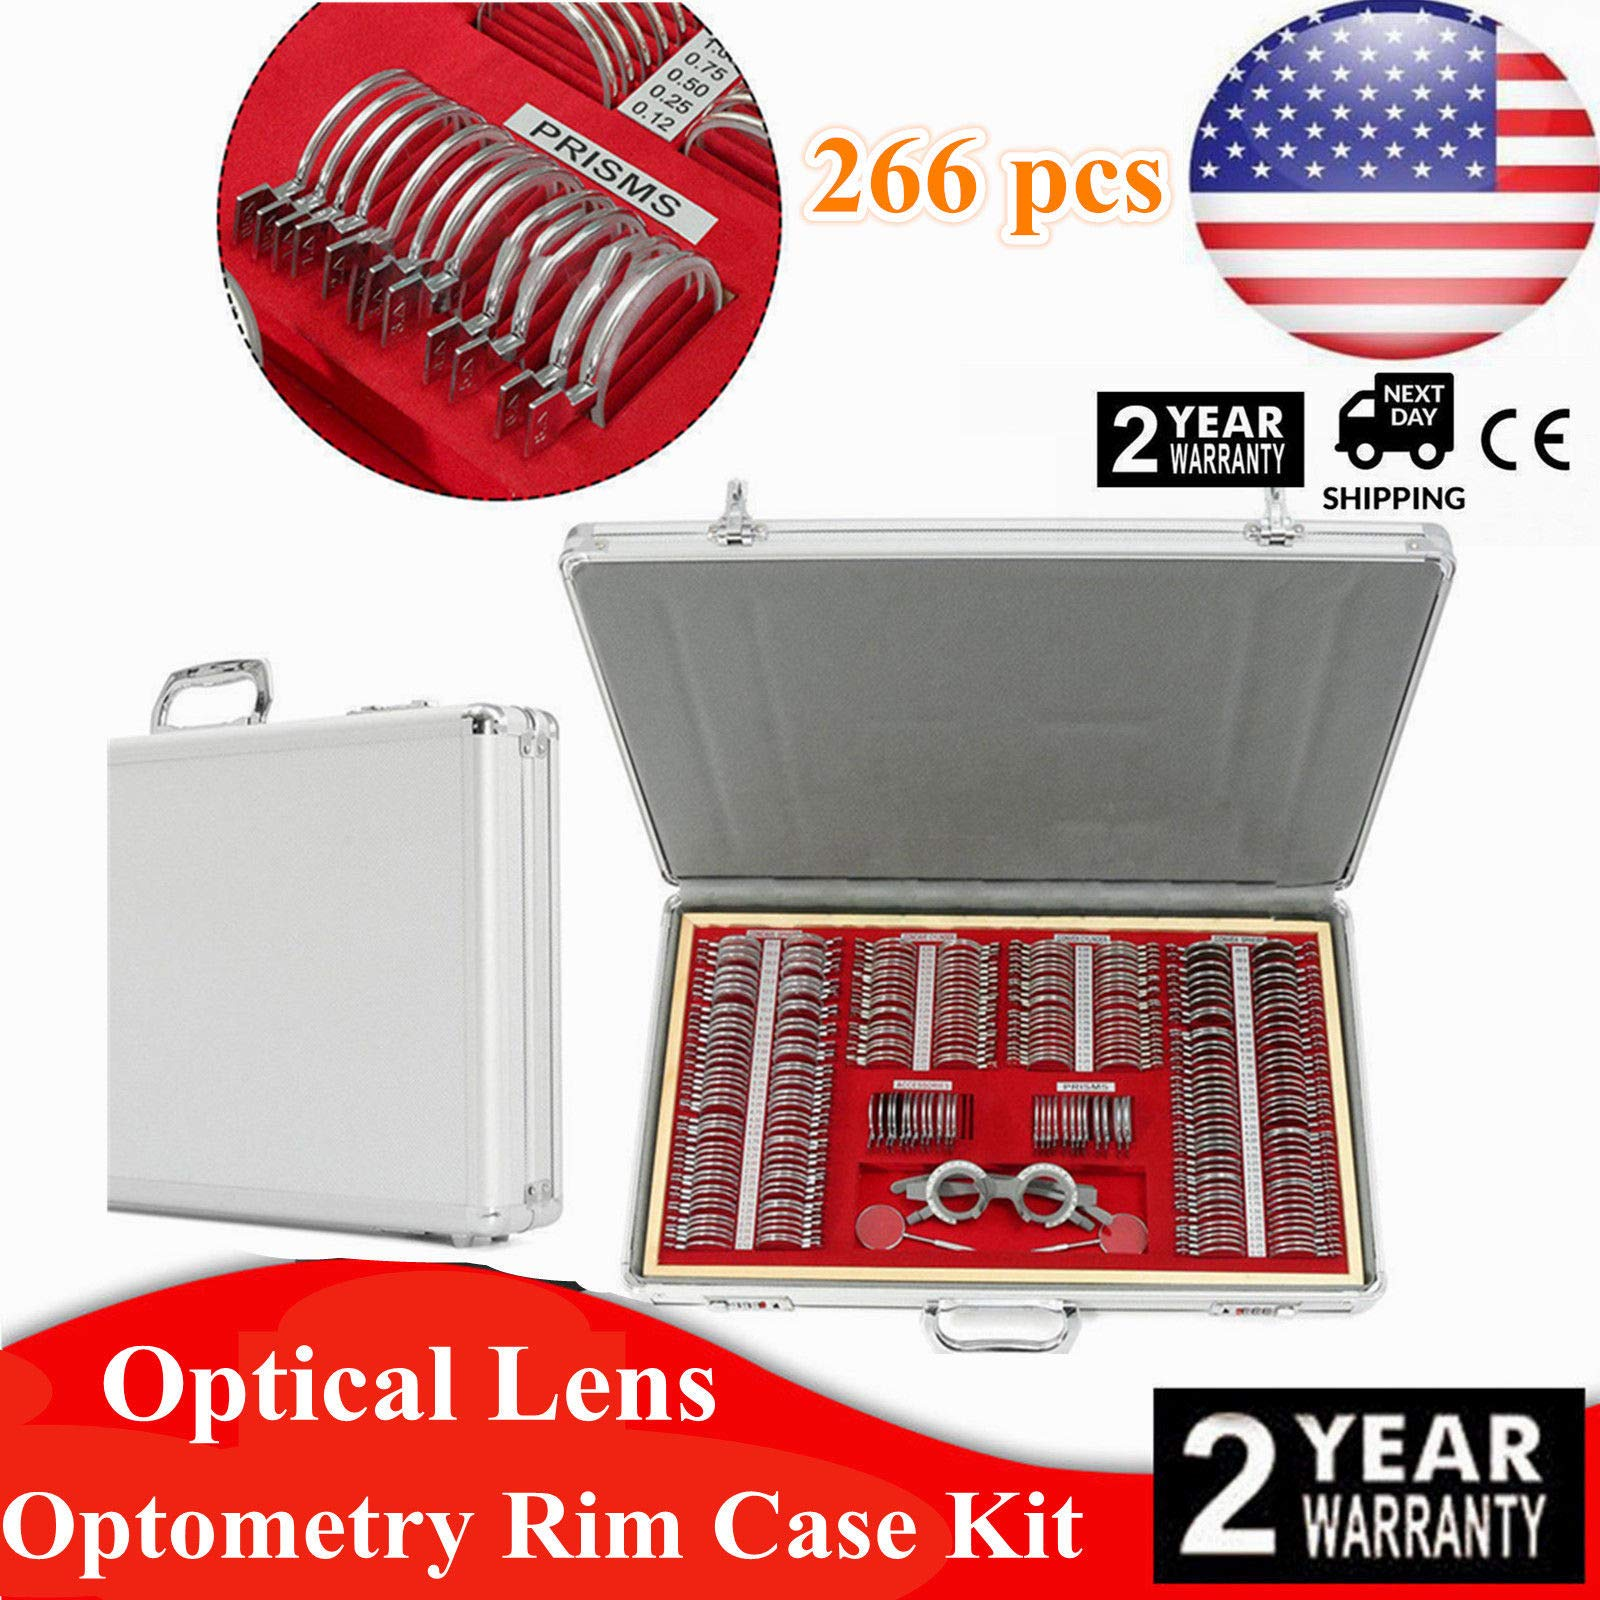 Eye Protection Accessories Set, 266 Pcs Optical Trial Lens Set Metal Rim Optometry Kit Case + Free Trial Frame (US_Stock) by GDAE10 (Image #8)